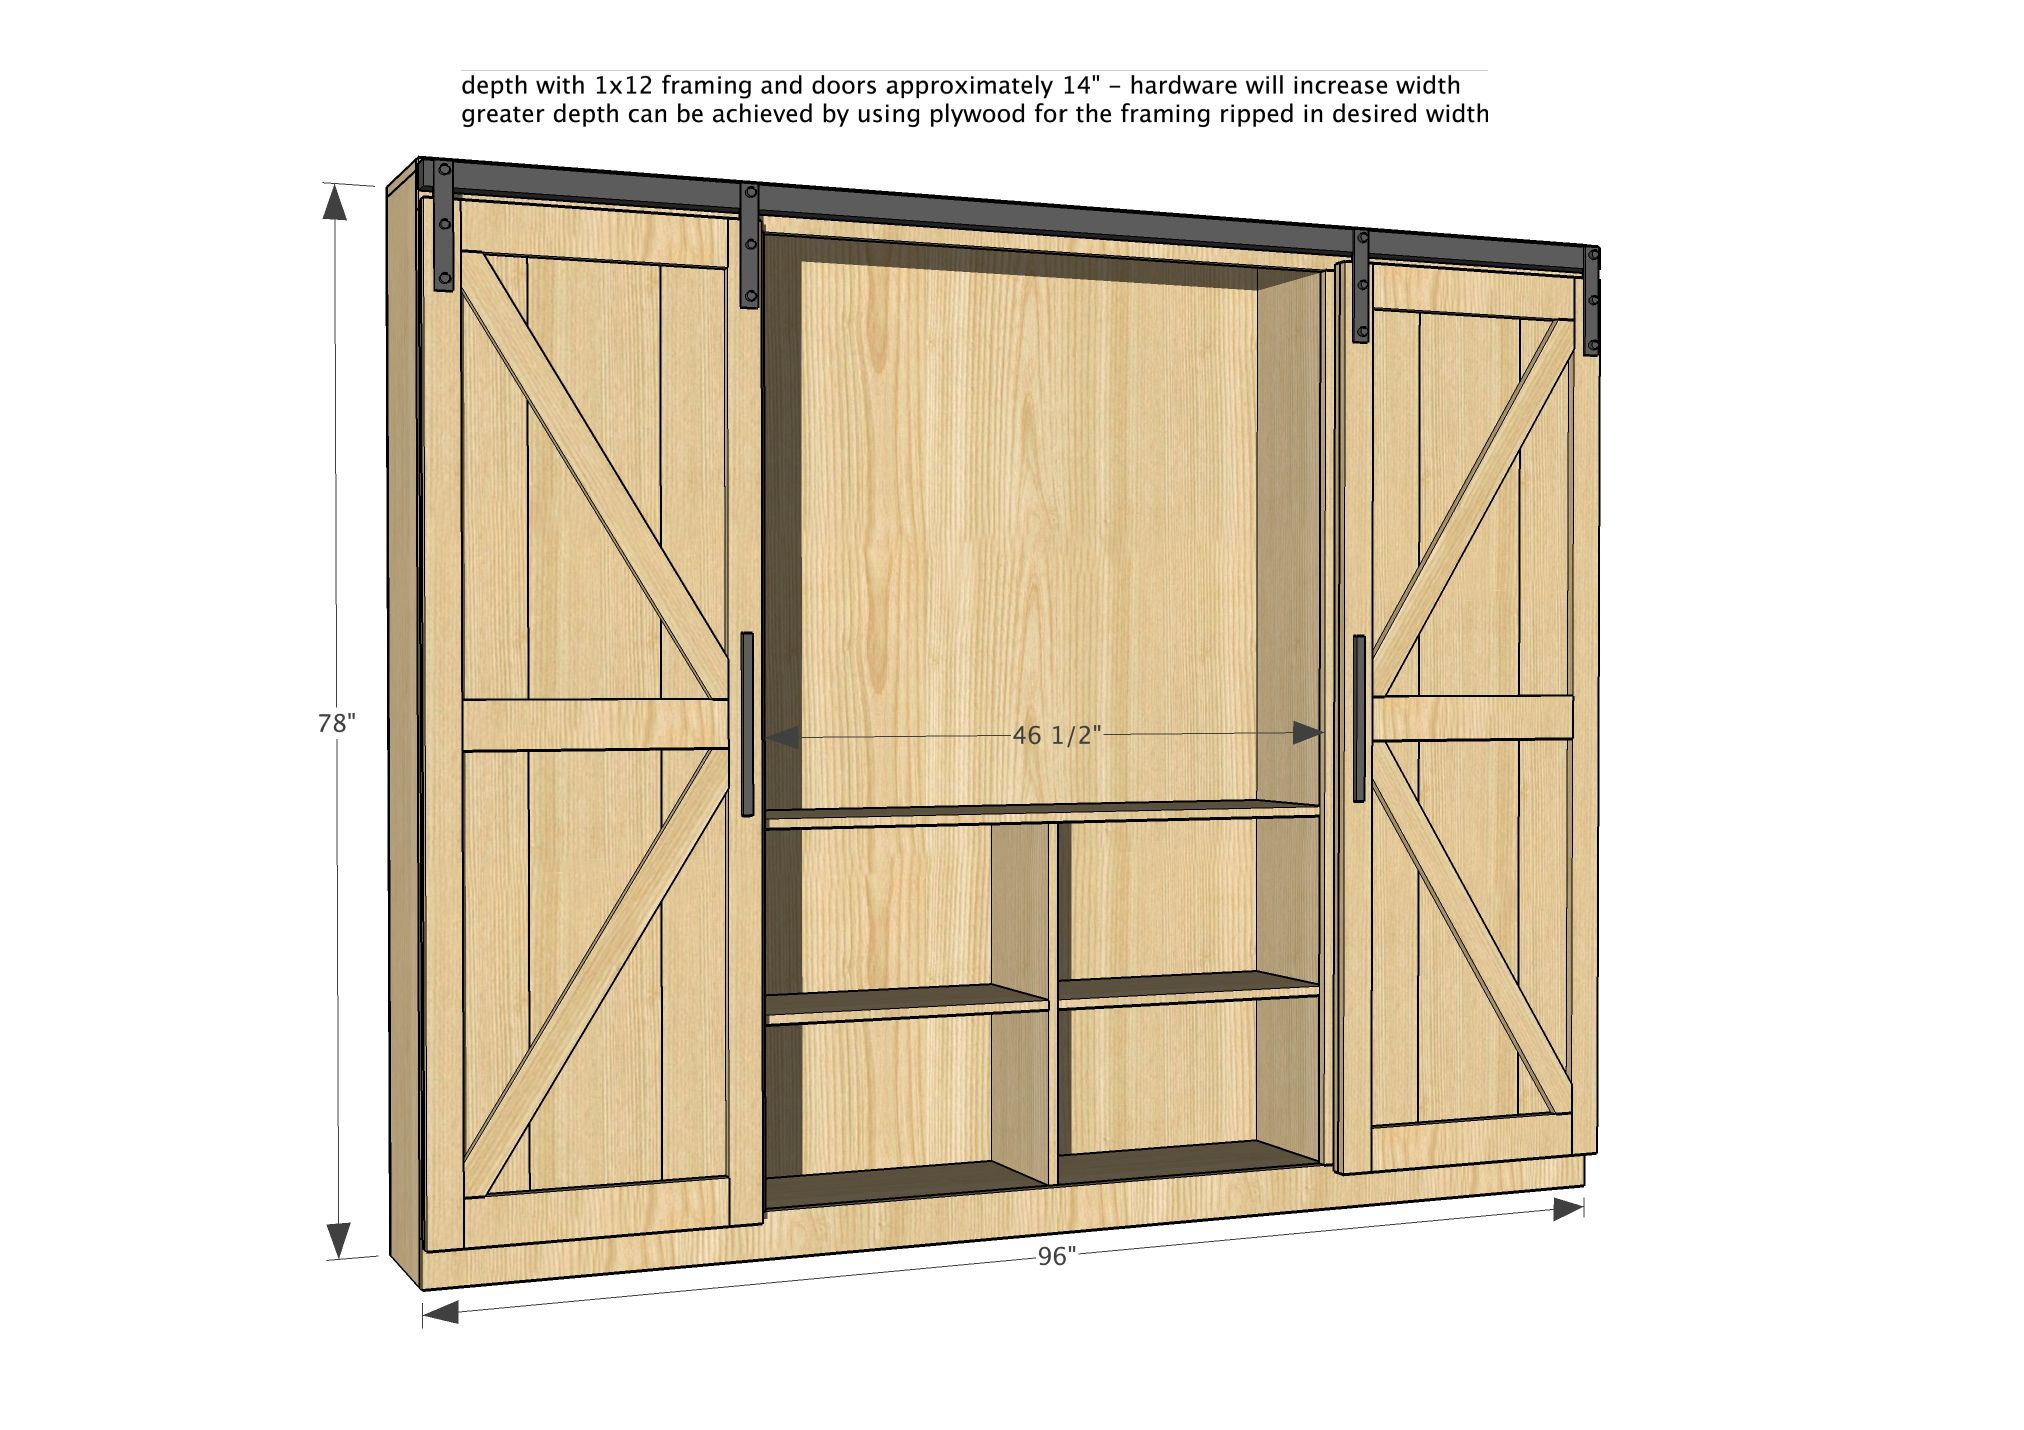 kmart portable wardrobe assembly instructions